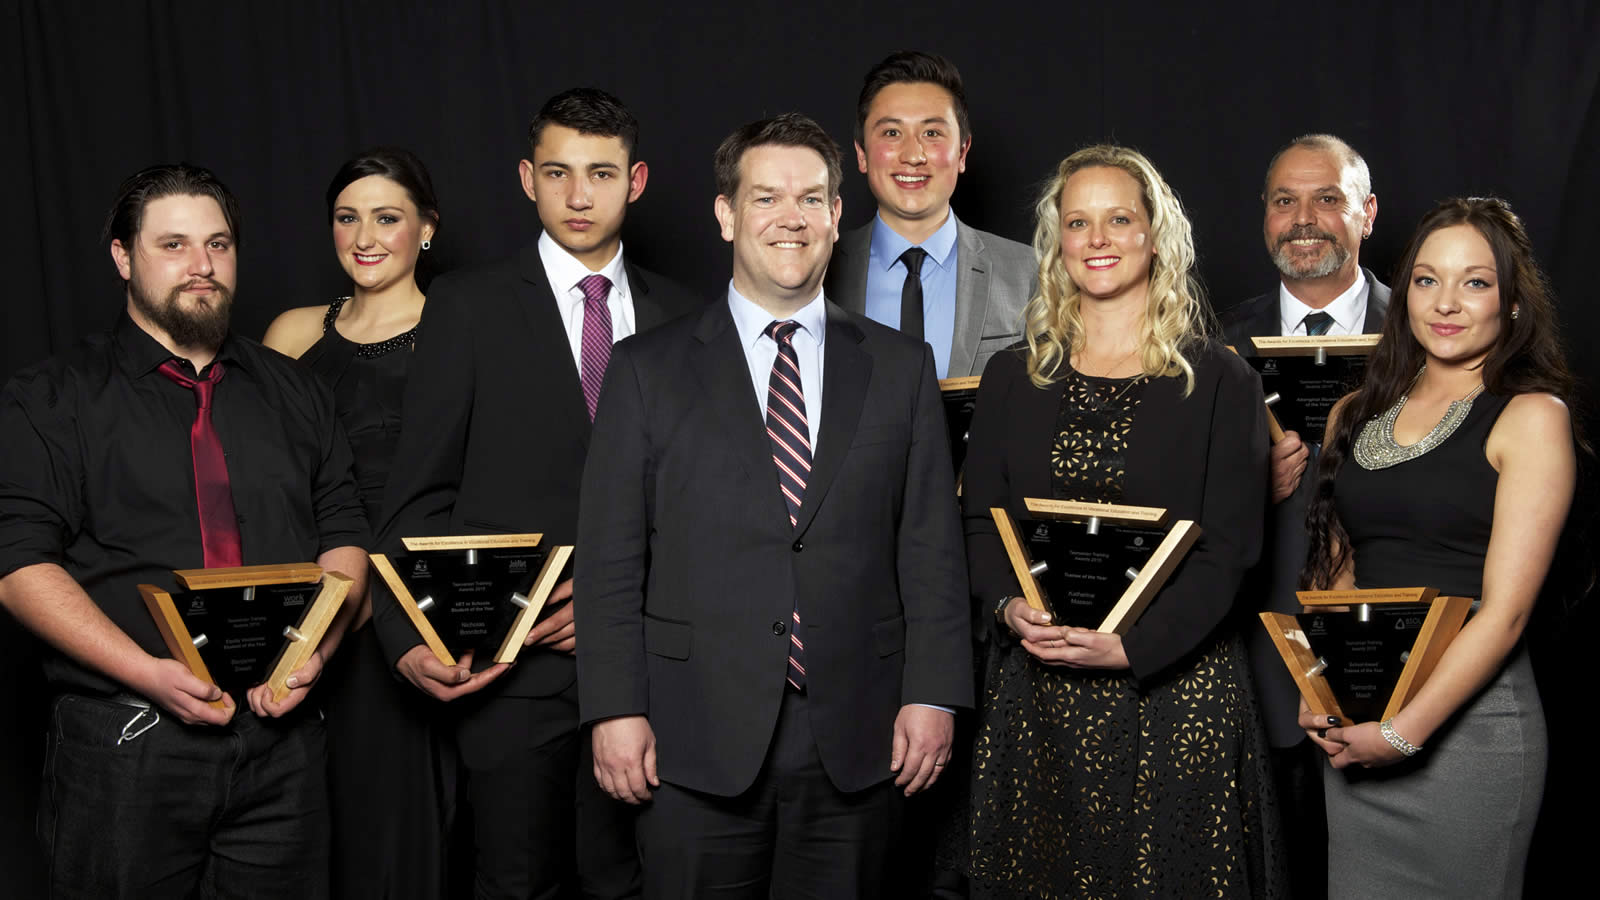 JobNet Tasmania VET in Schools Student of the Year Award winner Nicholas Bonnitcha (third from left) with the 2015 Tasmanian Training Award winners and Minister Matthew Groom. (large)